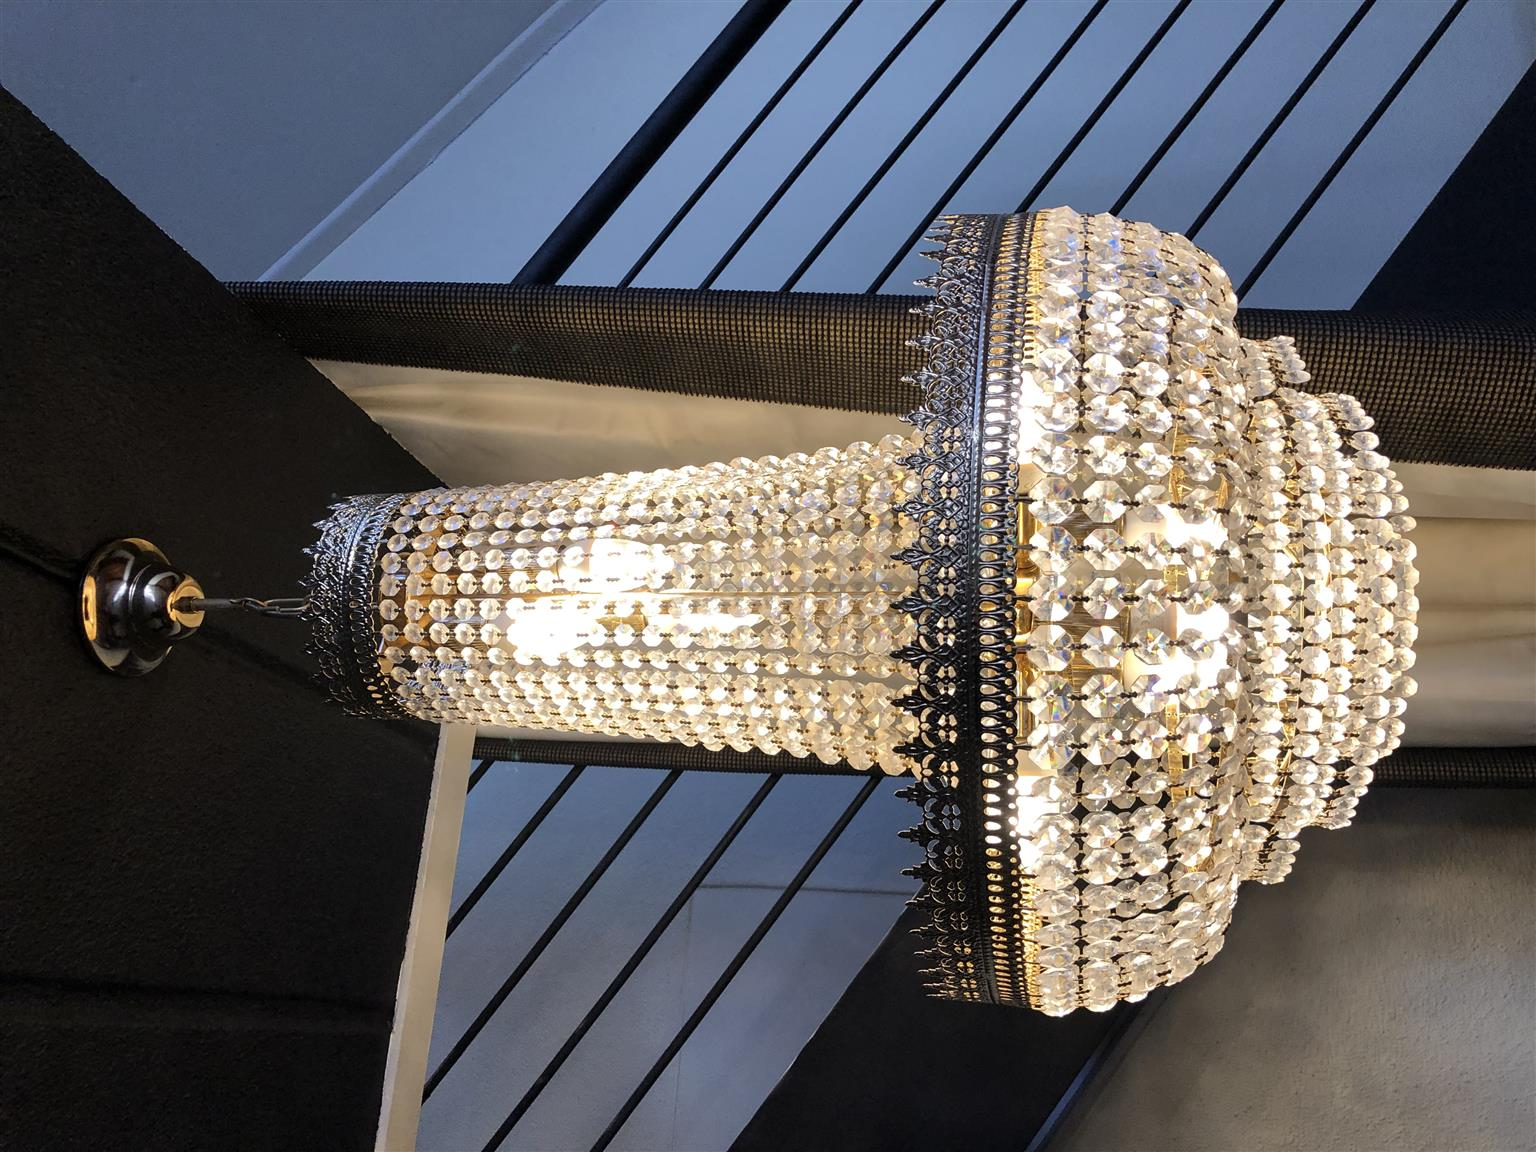 Crystal Italian Chandelier discounted by 30%